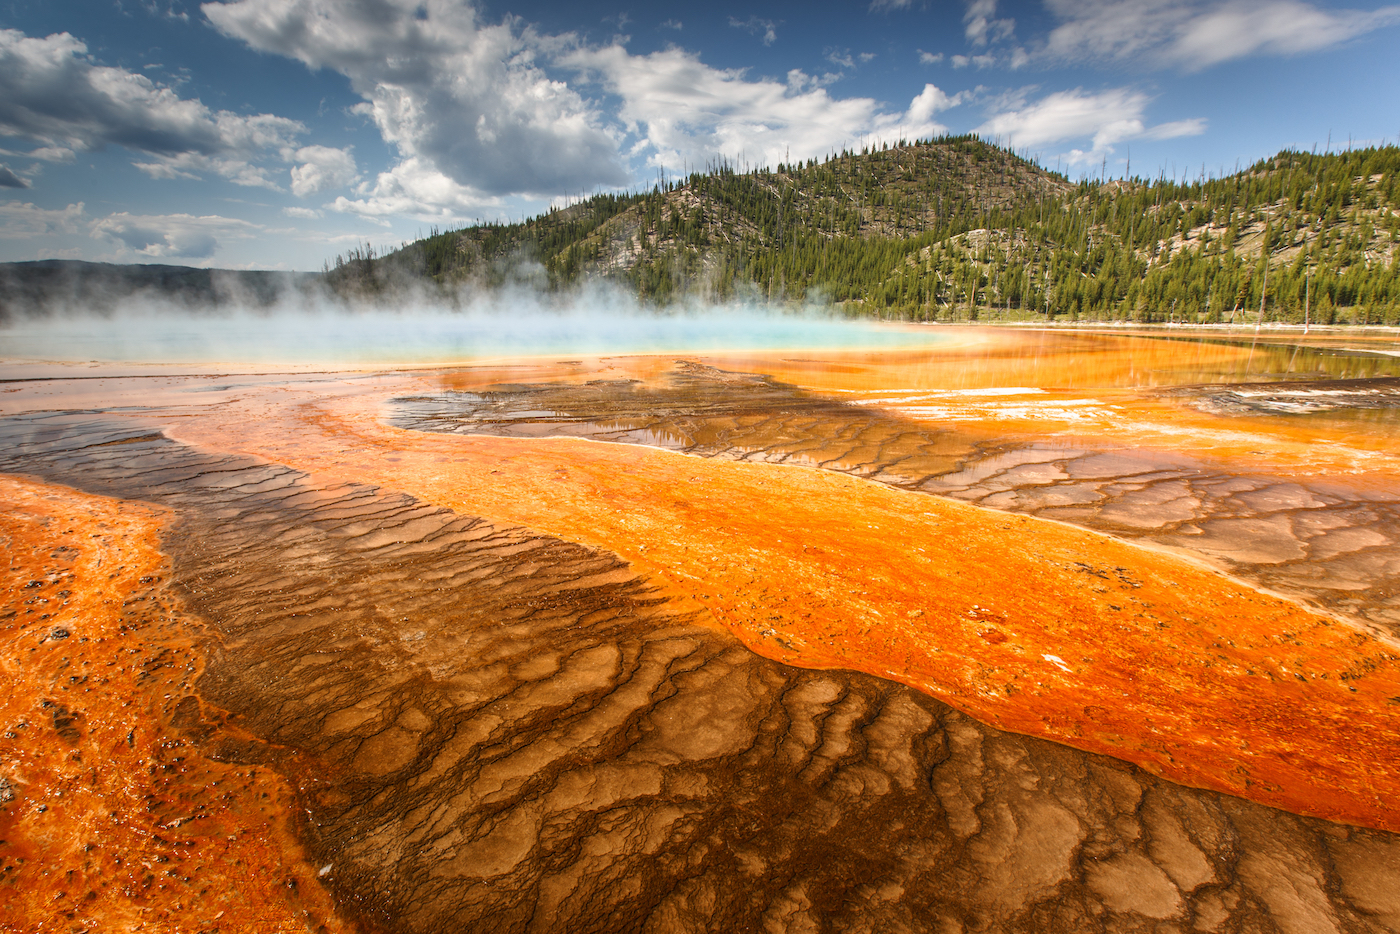 yellowstone volcanic activity A supervolcano is a large volcano that has had an eruption of magnitude 8 or  more.